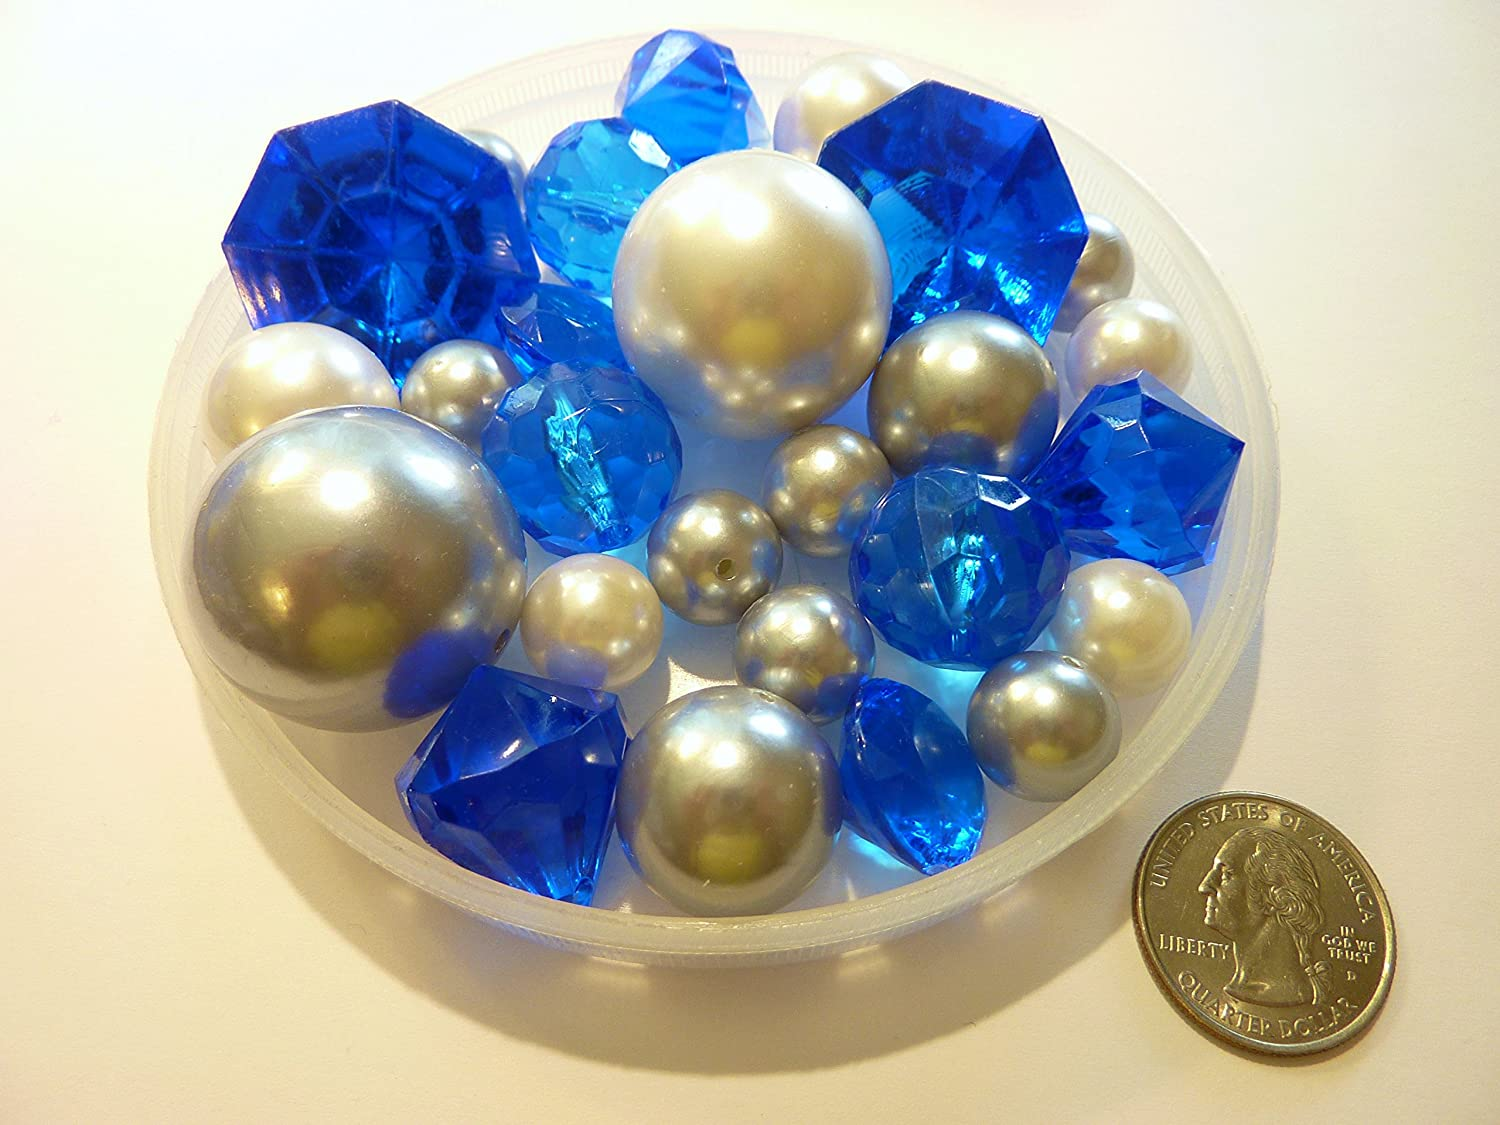 Amazon 80 unique jumbo assorted sizes royal blue gems amazon 80 unique jumbo assorted sizes royal blue gemscobalt blue gems white pearls silver pearls value pack vase fillers to float the pearls floridaeventfo Image collections